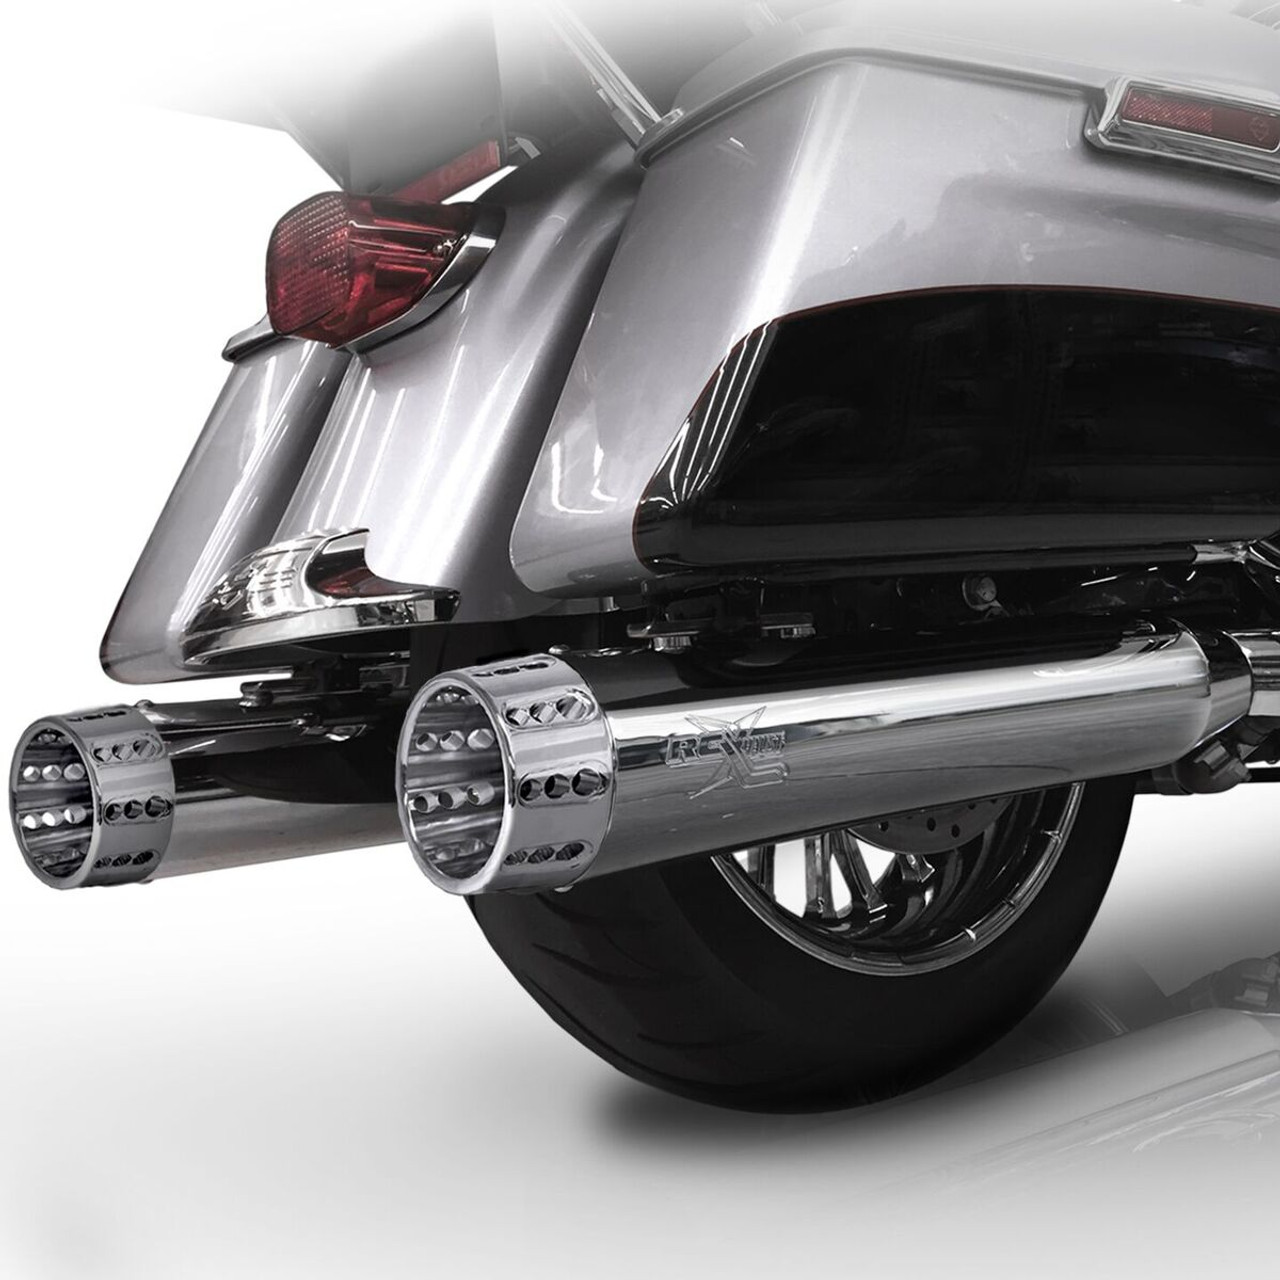 RCX 4 5 inch Slip On Mufflers for Harley Davidson Touring Models '17-Up -  Chrome (10 Tip Styles To Choose From)